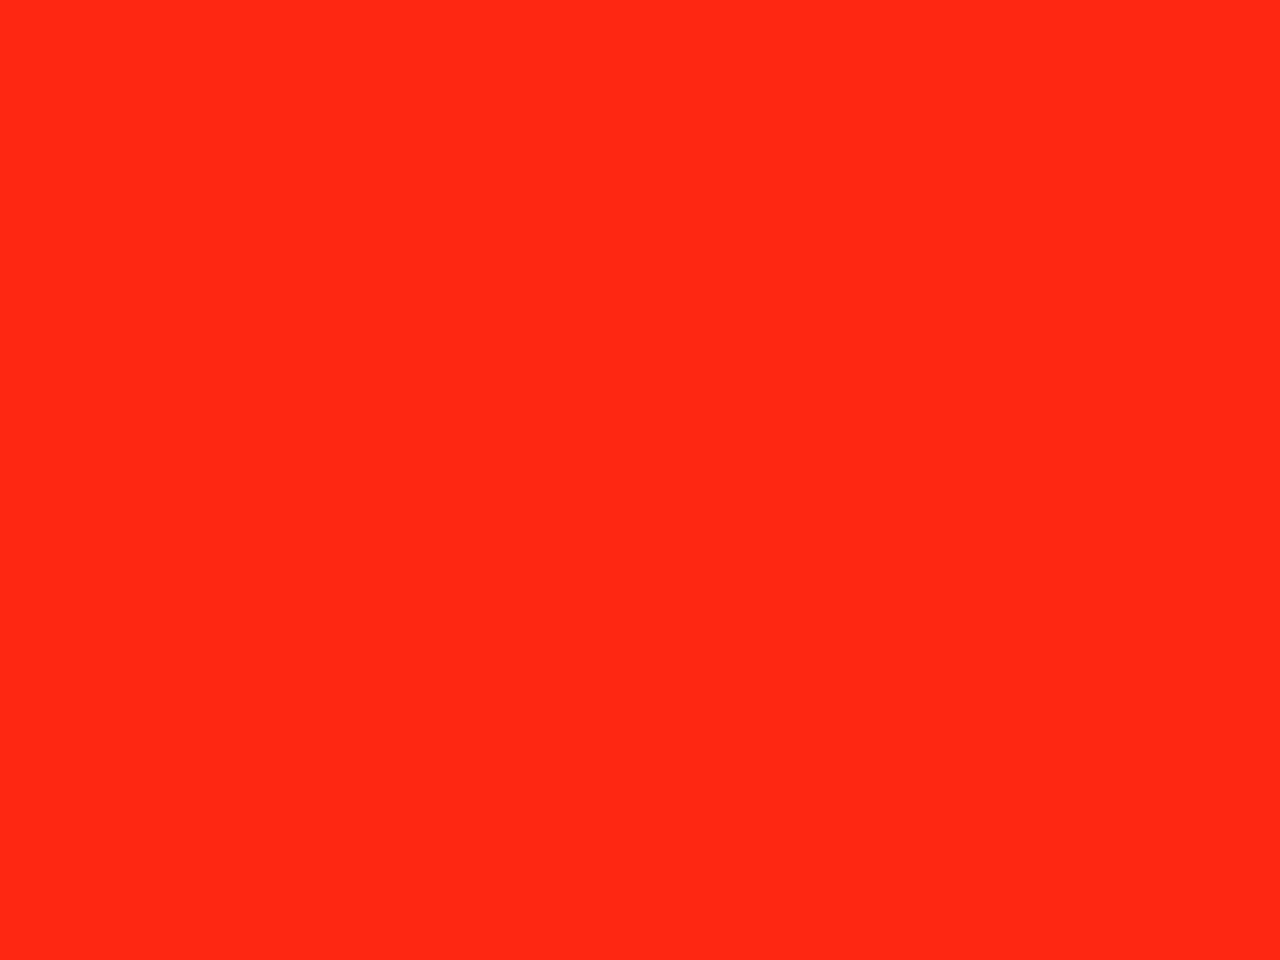 1280x960 Red RYB Solid Color Background